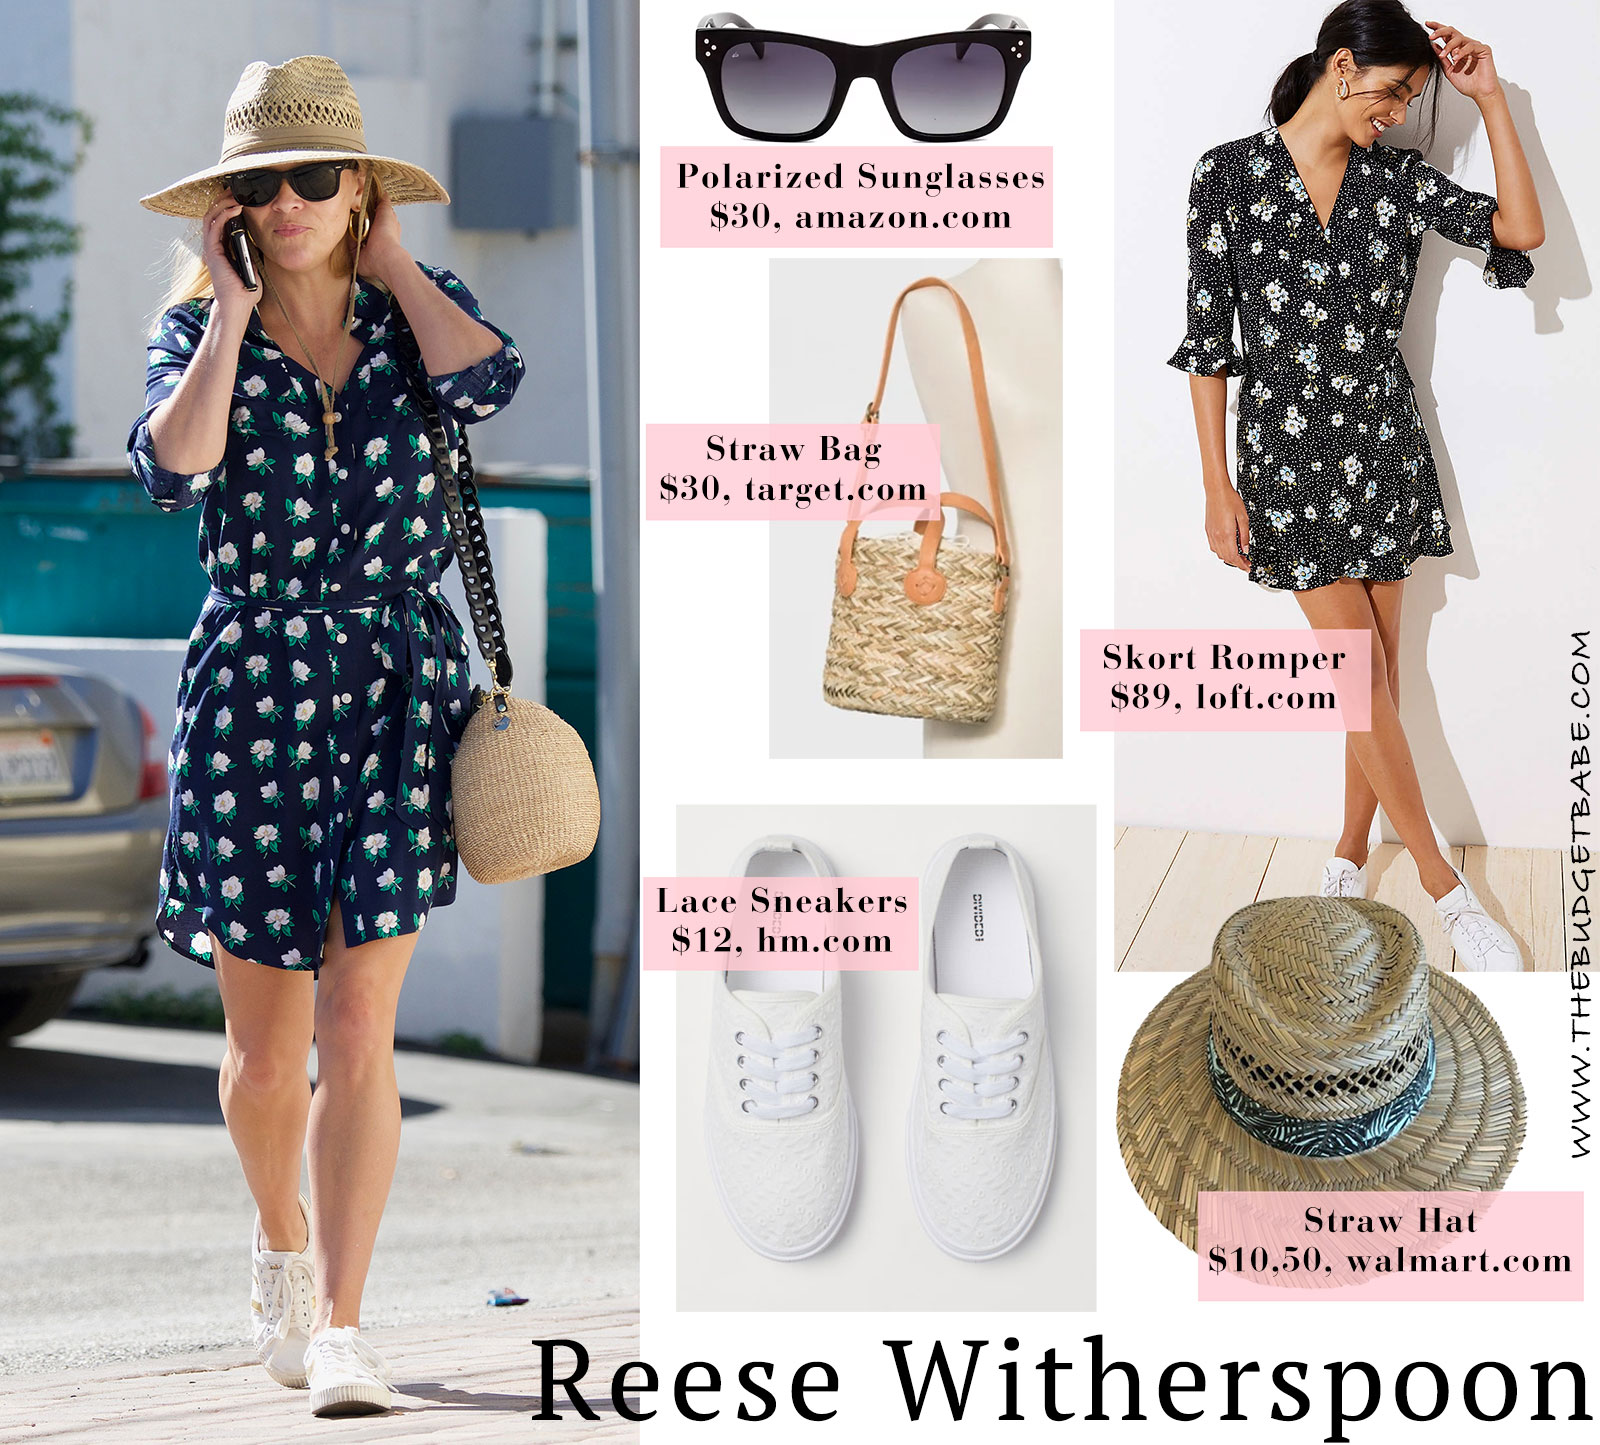 Steal Her Style: Reese Witherspoon's floral dress and white sneakers outfit for summer